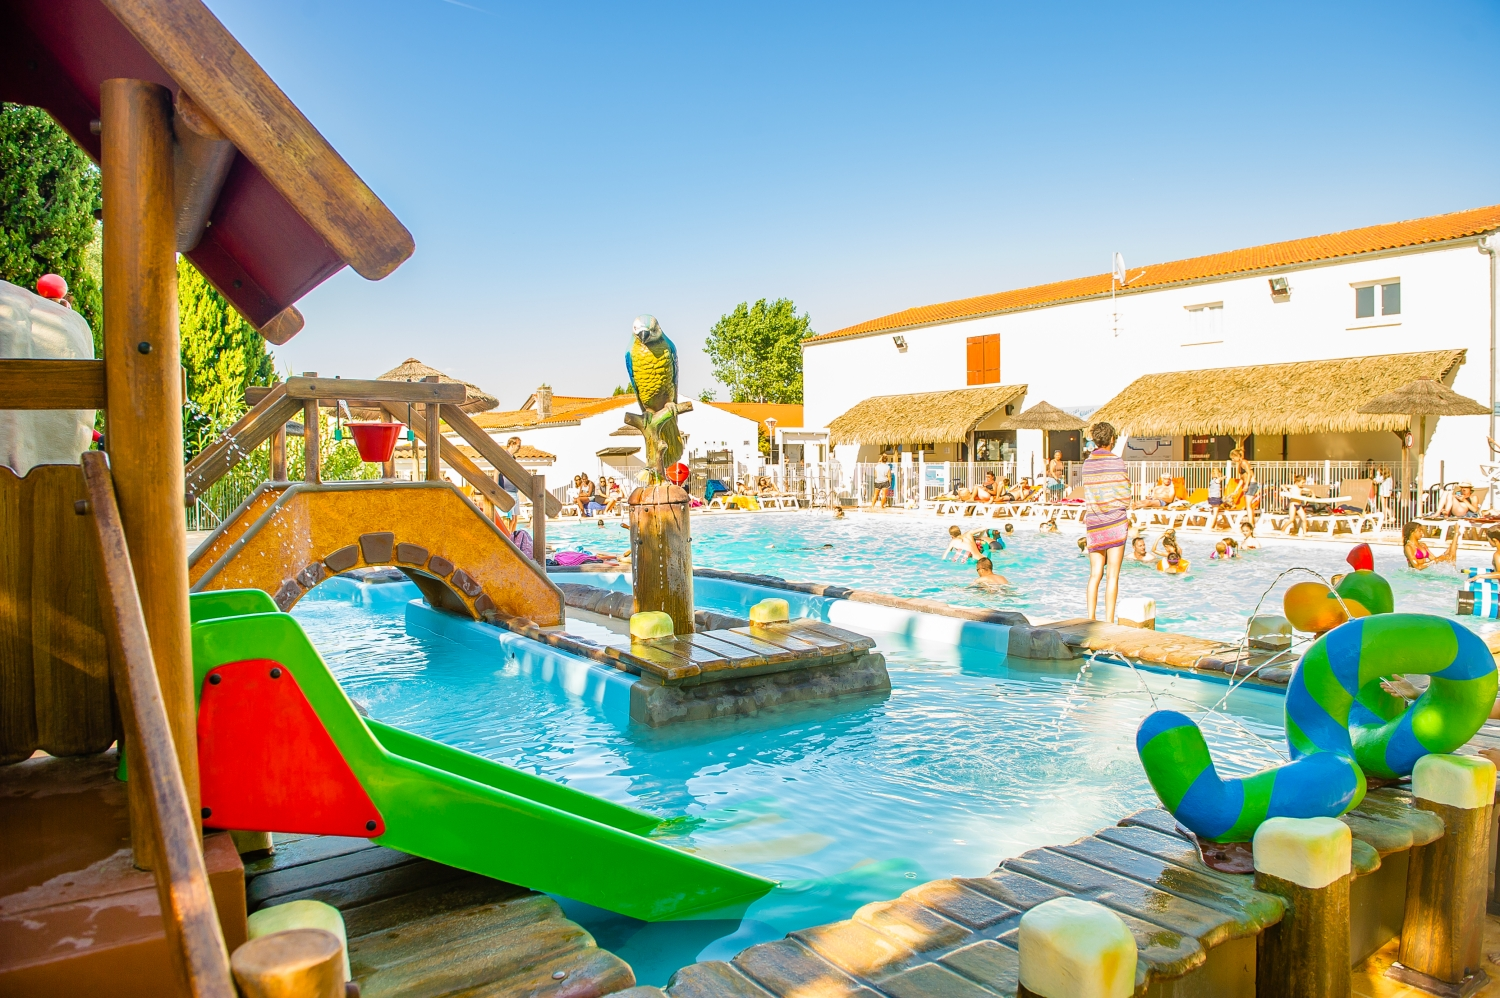 Circulaire ete for Camping hardelot plage avec piscine